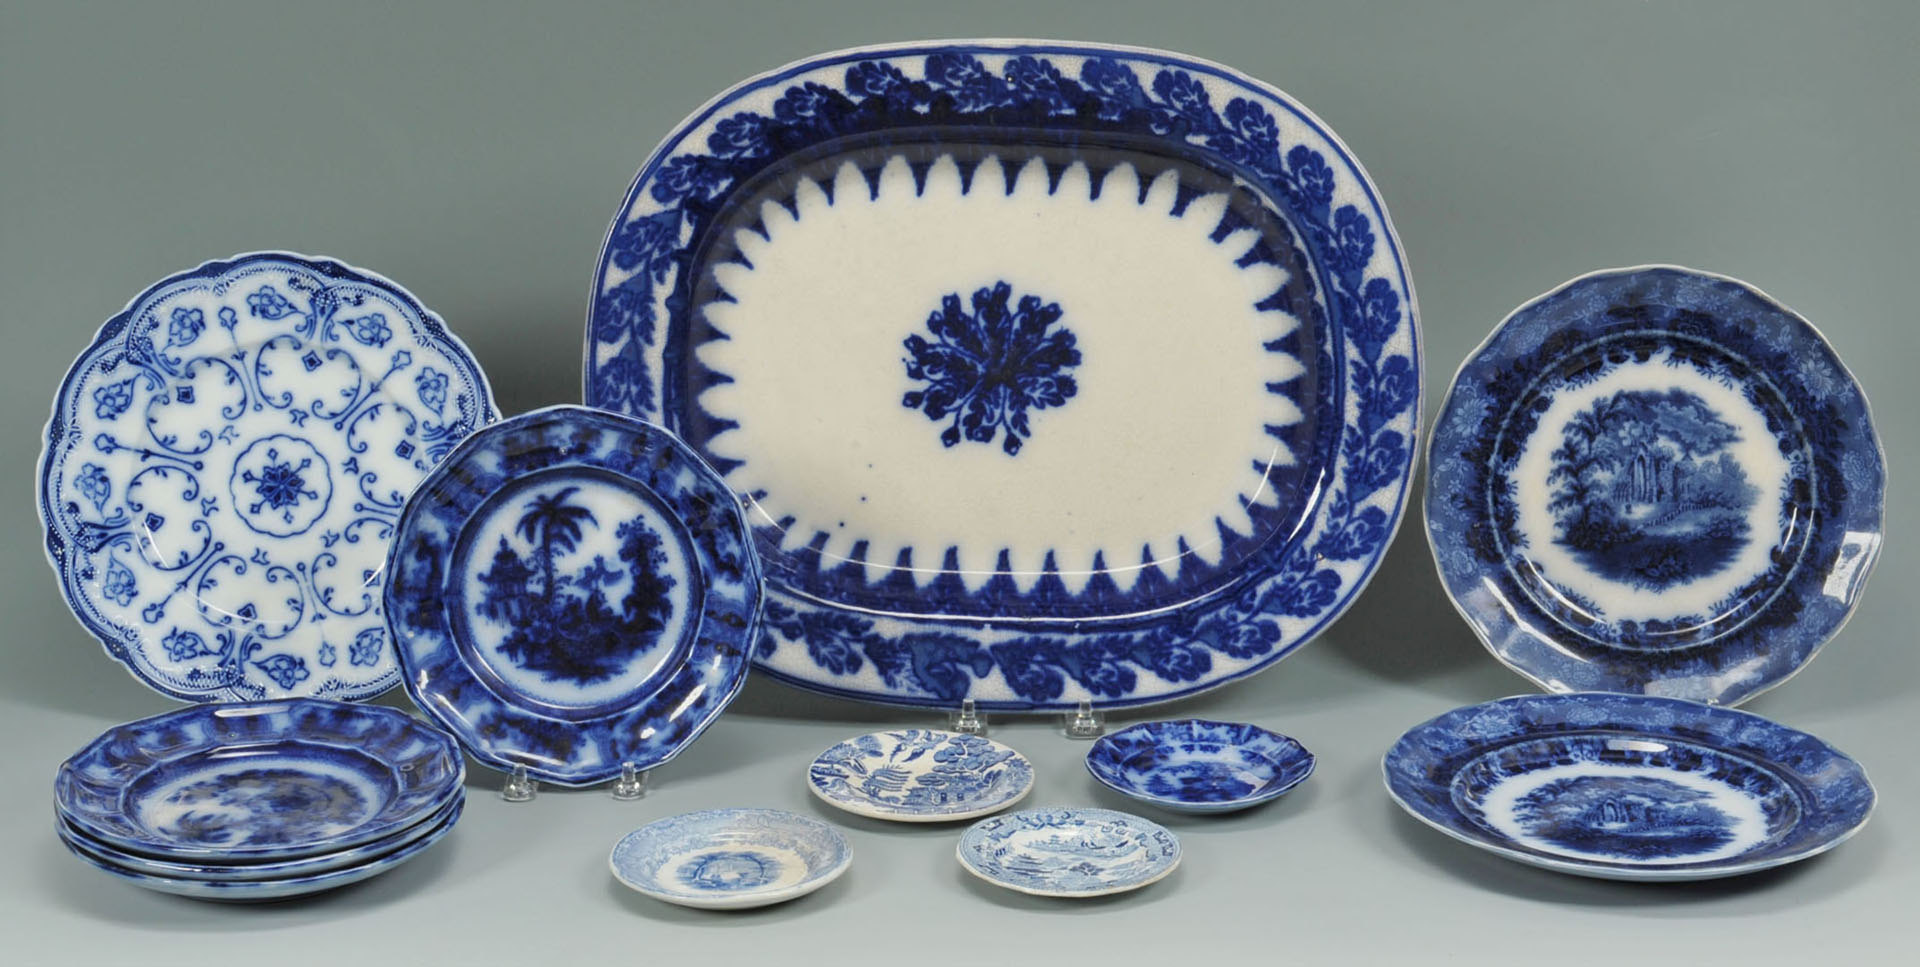 Lot 669: 12 pcs of English Ceramics, incl. Flow Blue